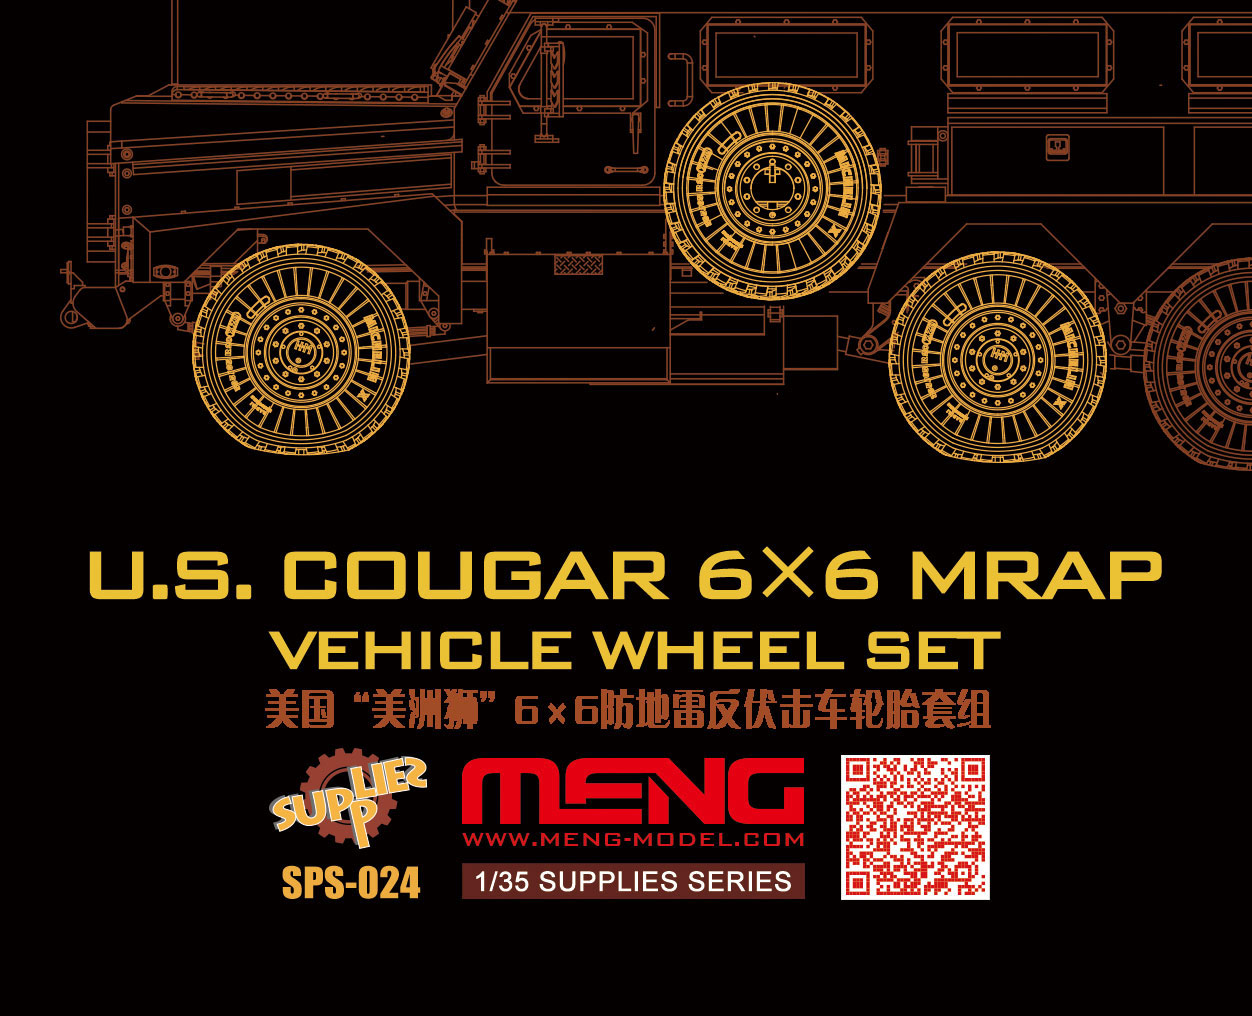 Meng 1/35 U.S. Cougar 6_6 MRAP Vehicle Wheel Set (RESIN)